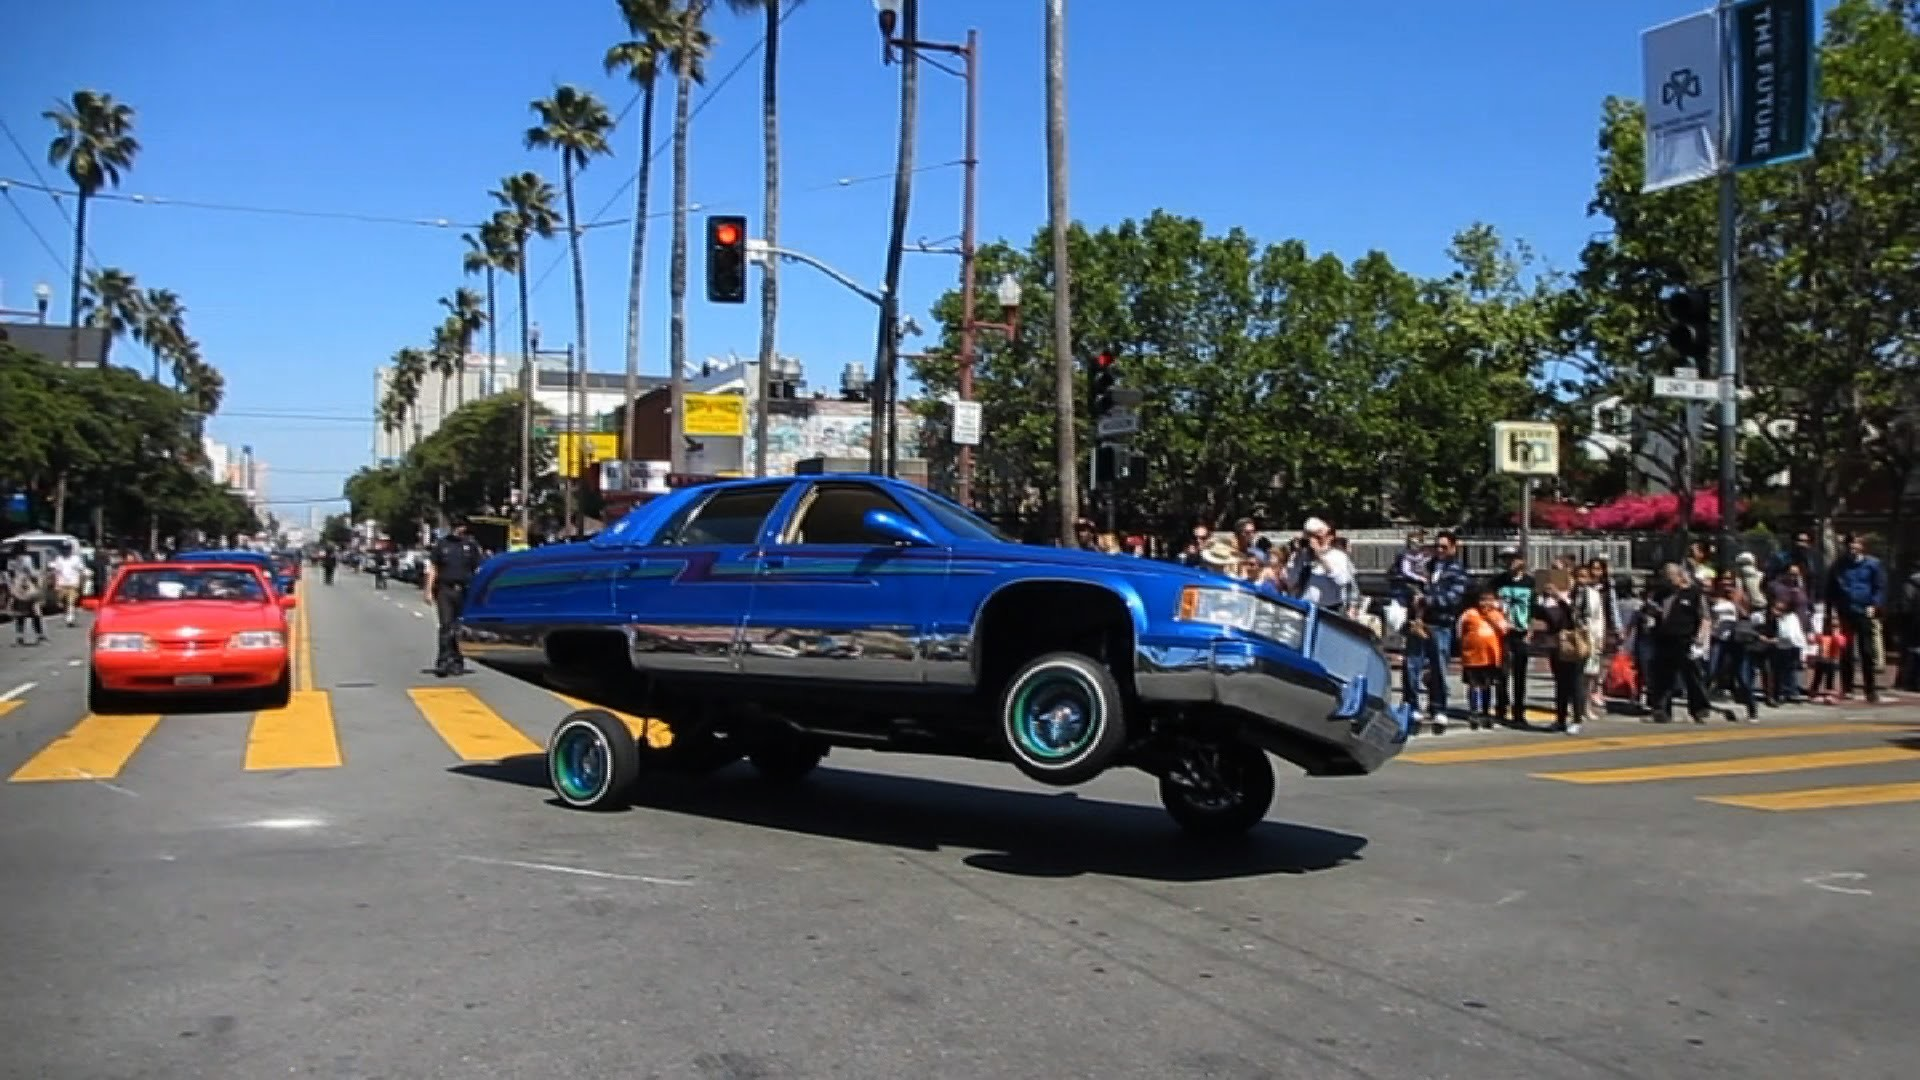 Res: 1920x1080, Lowrider. Home · Car; Lowrider